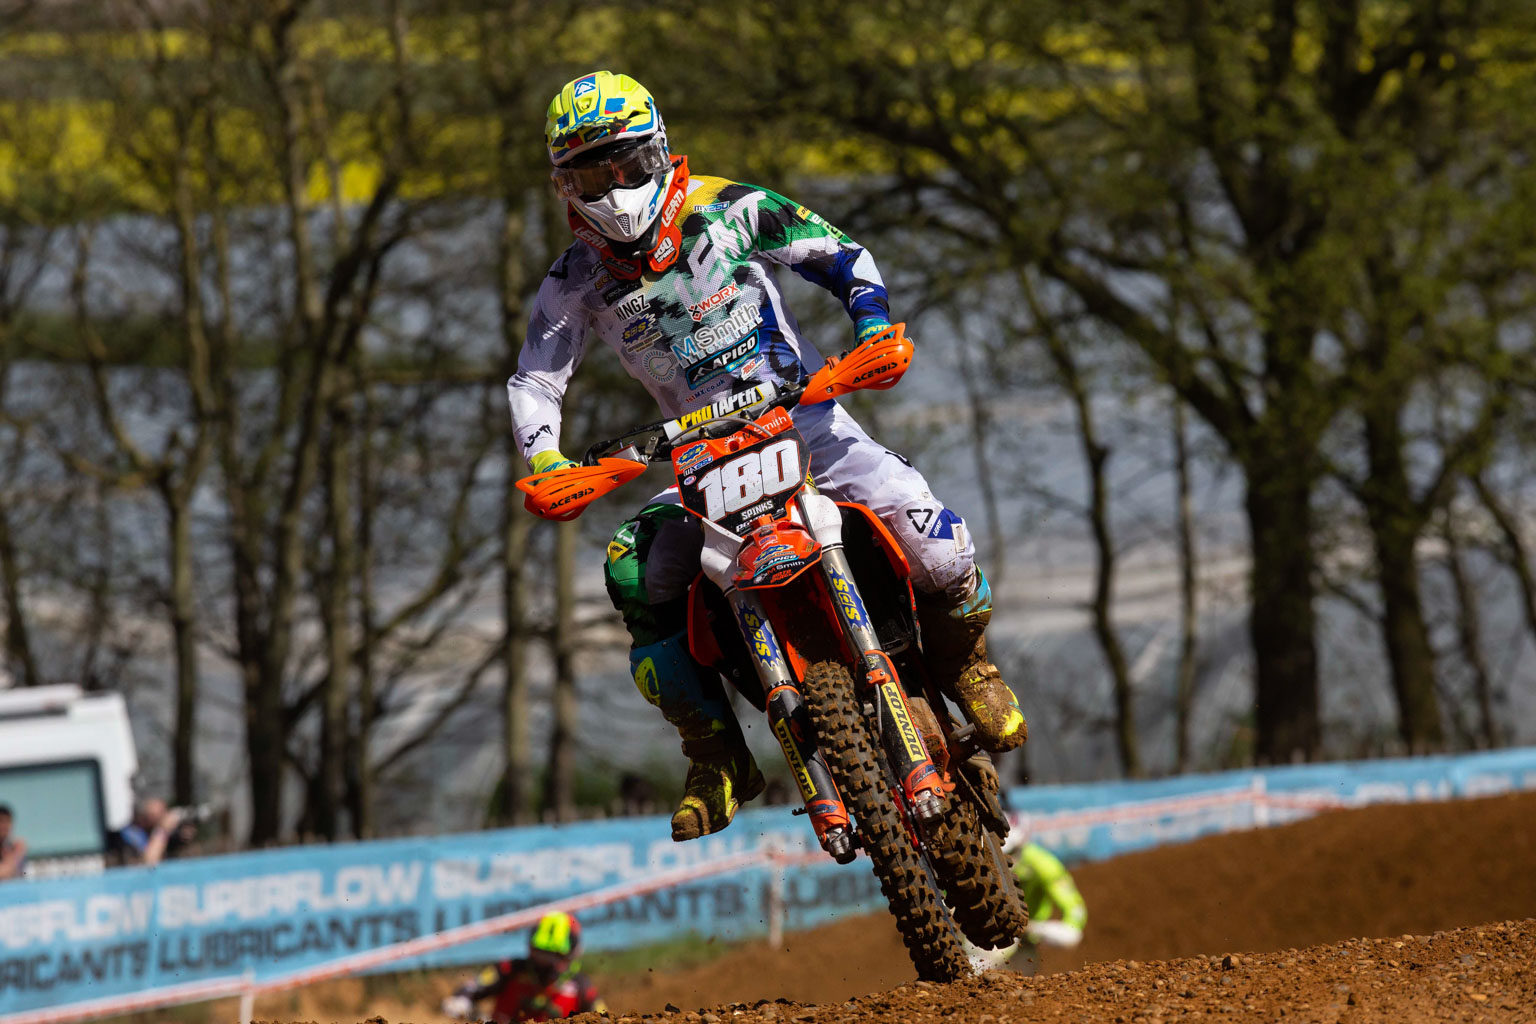 Fast-starting Spinks holeshot both motos